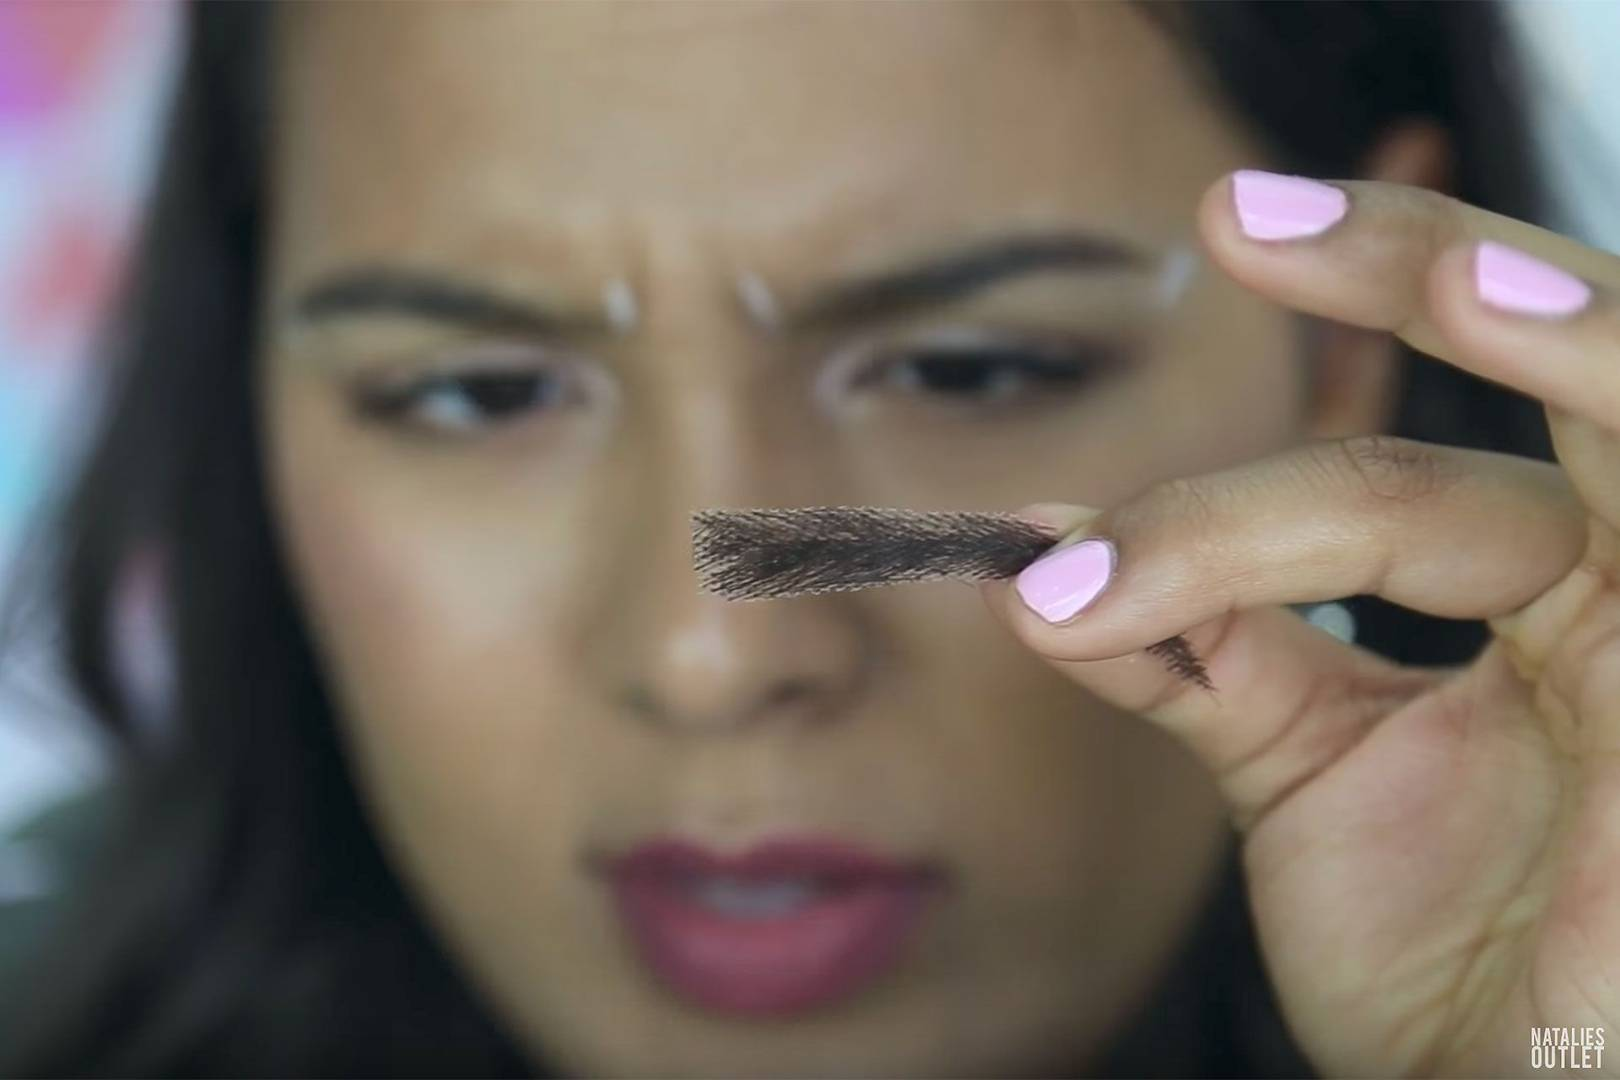 Eyebrow Wigs Exist Theyre Not As Ridiculous As They Seem Glamour Uk